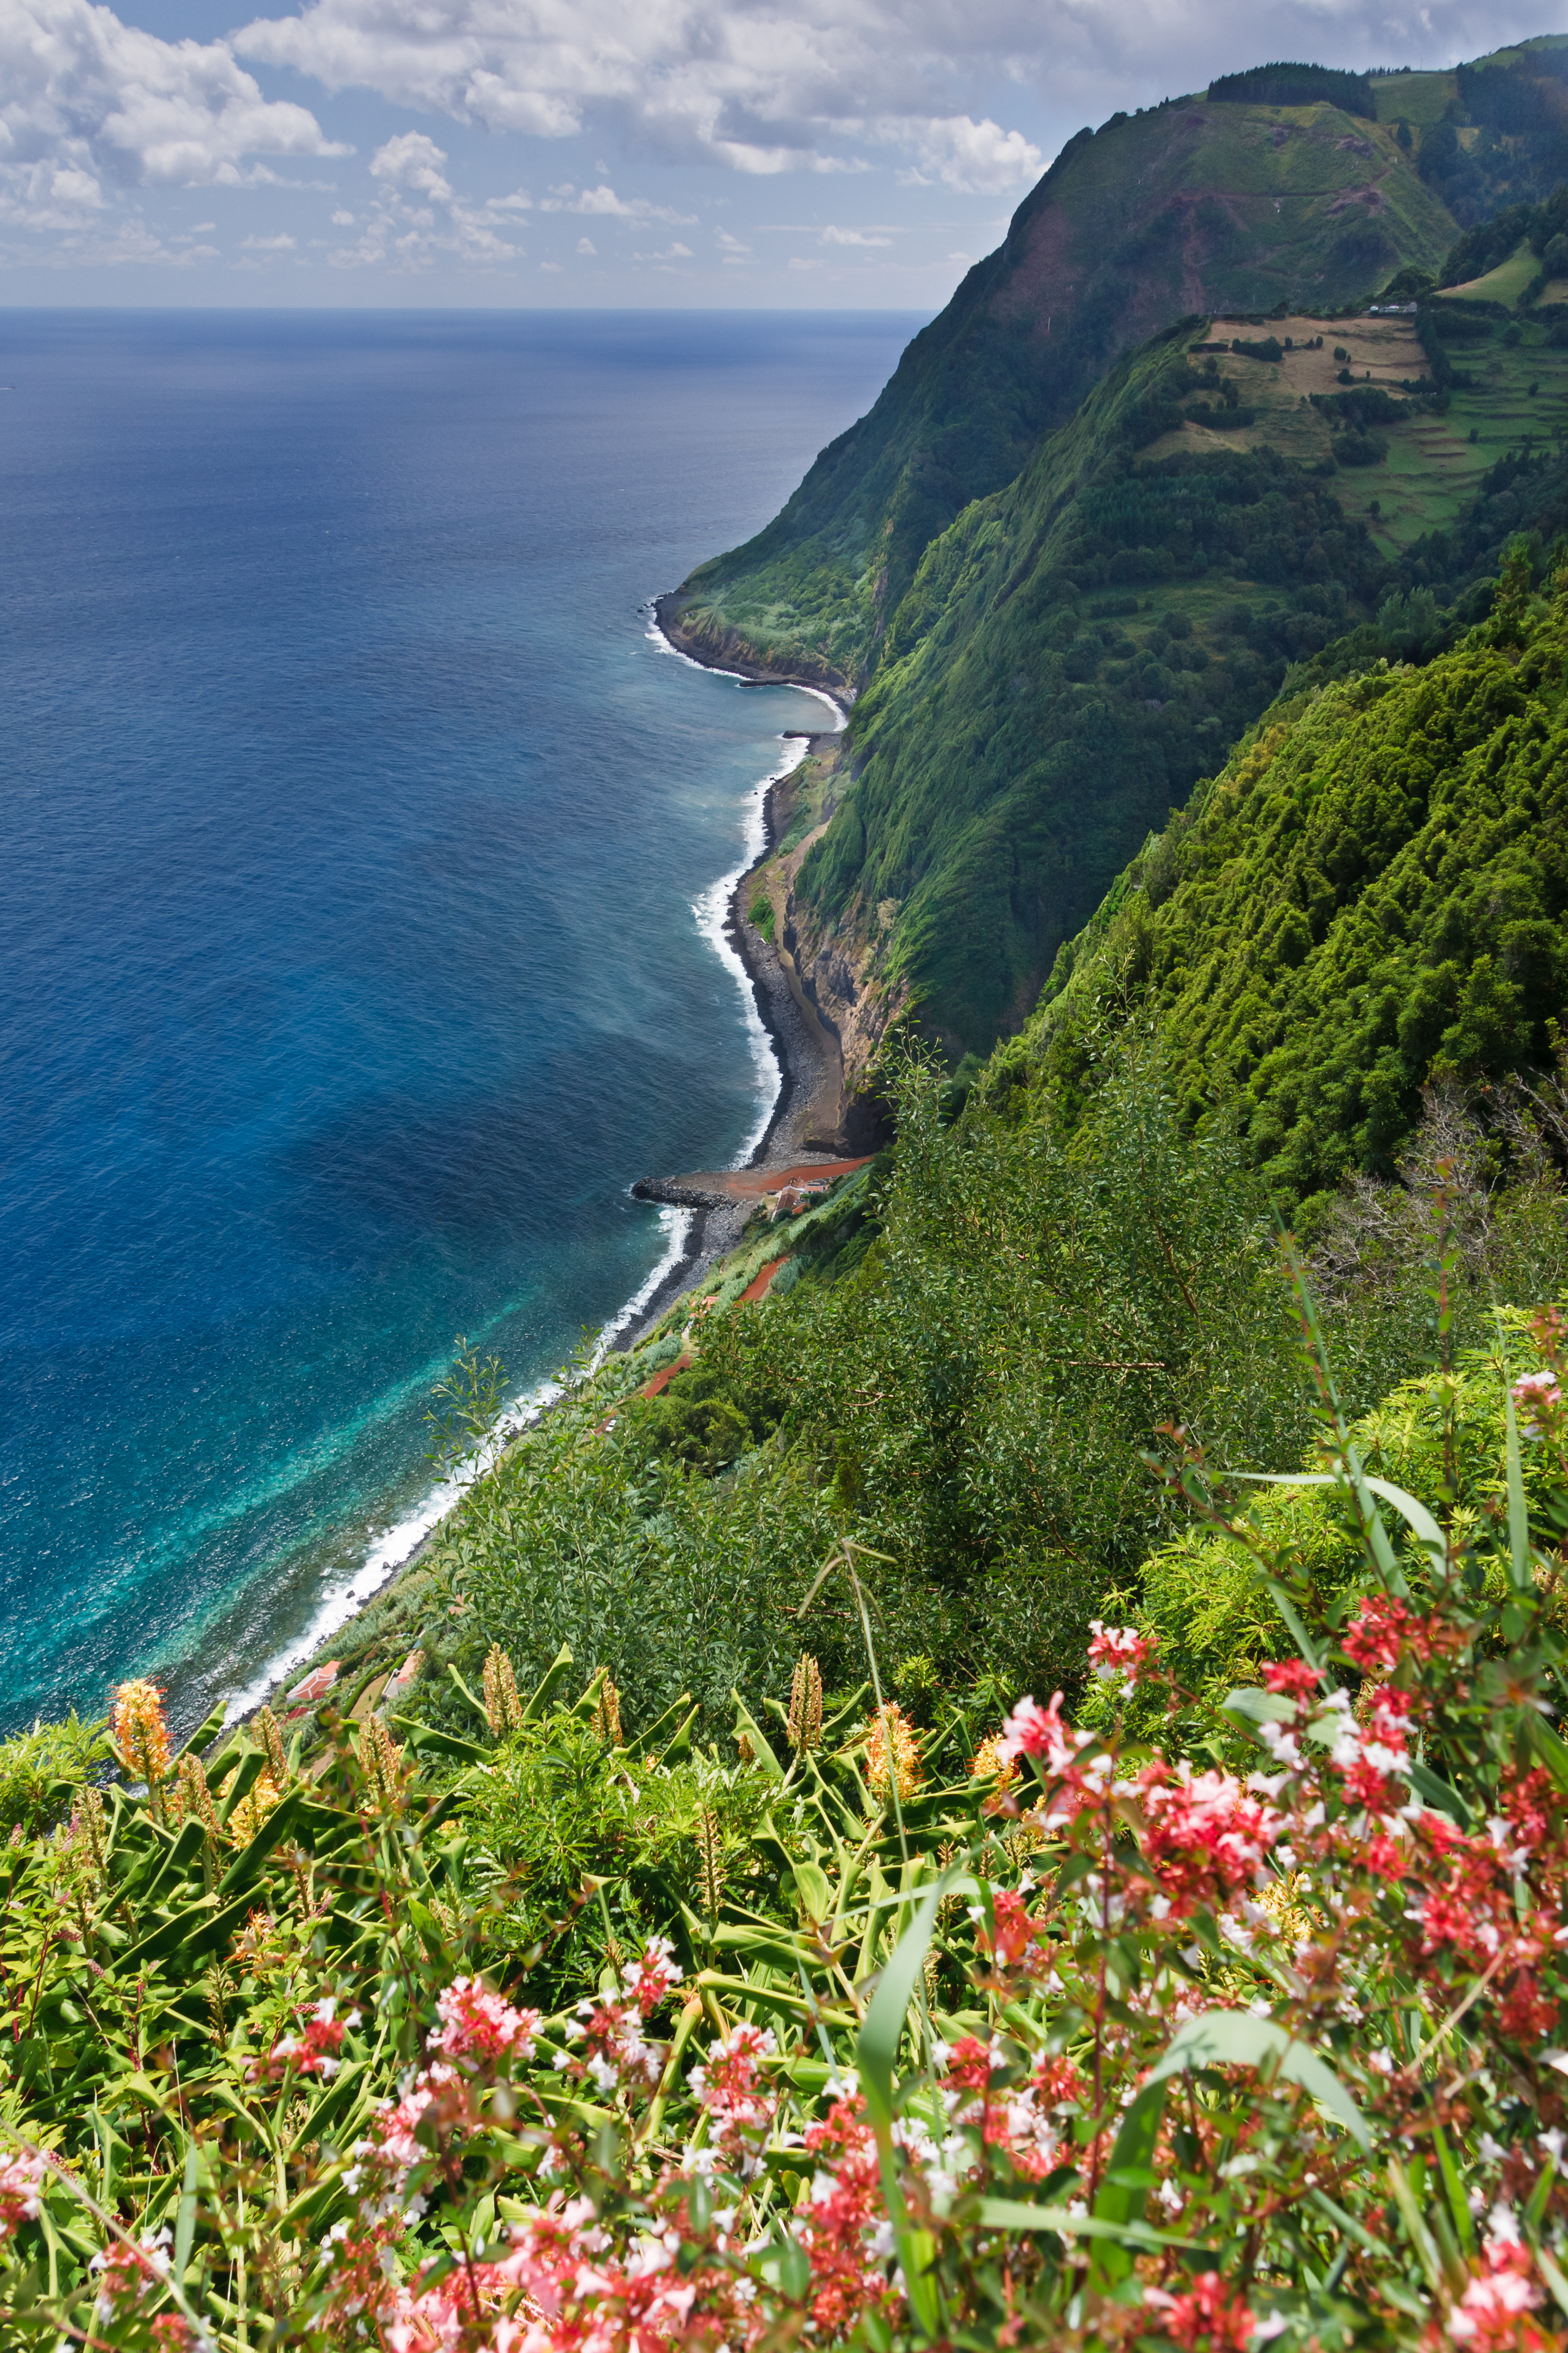 São Miguel in the Azores